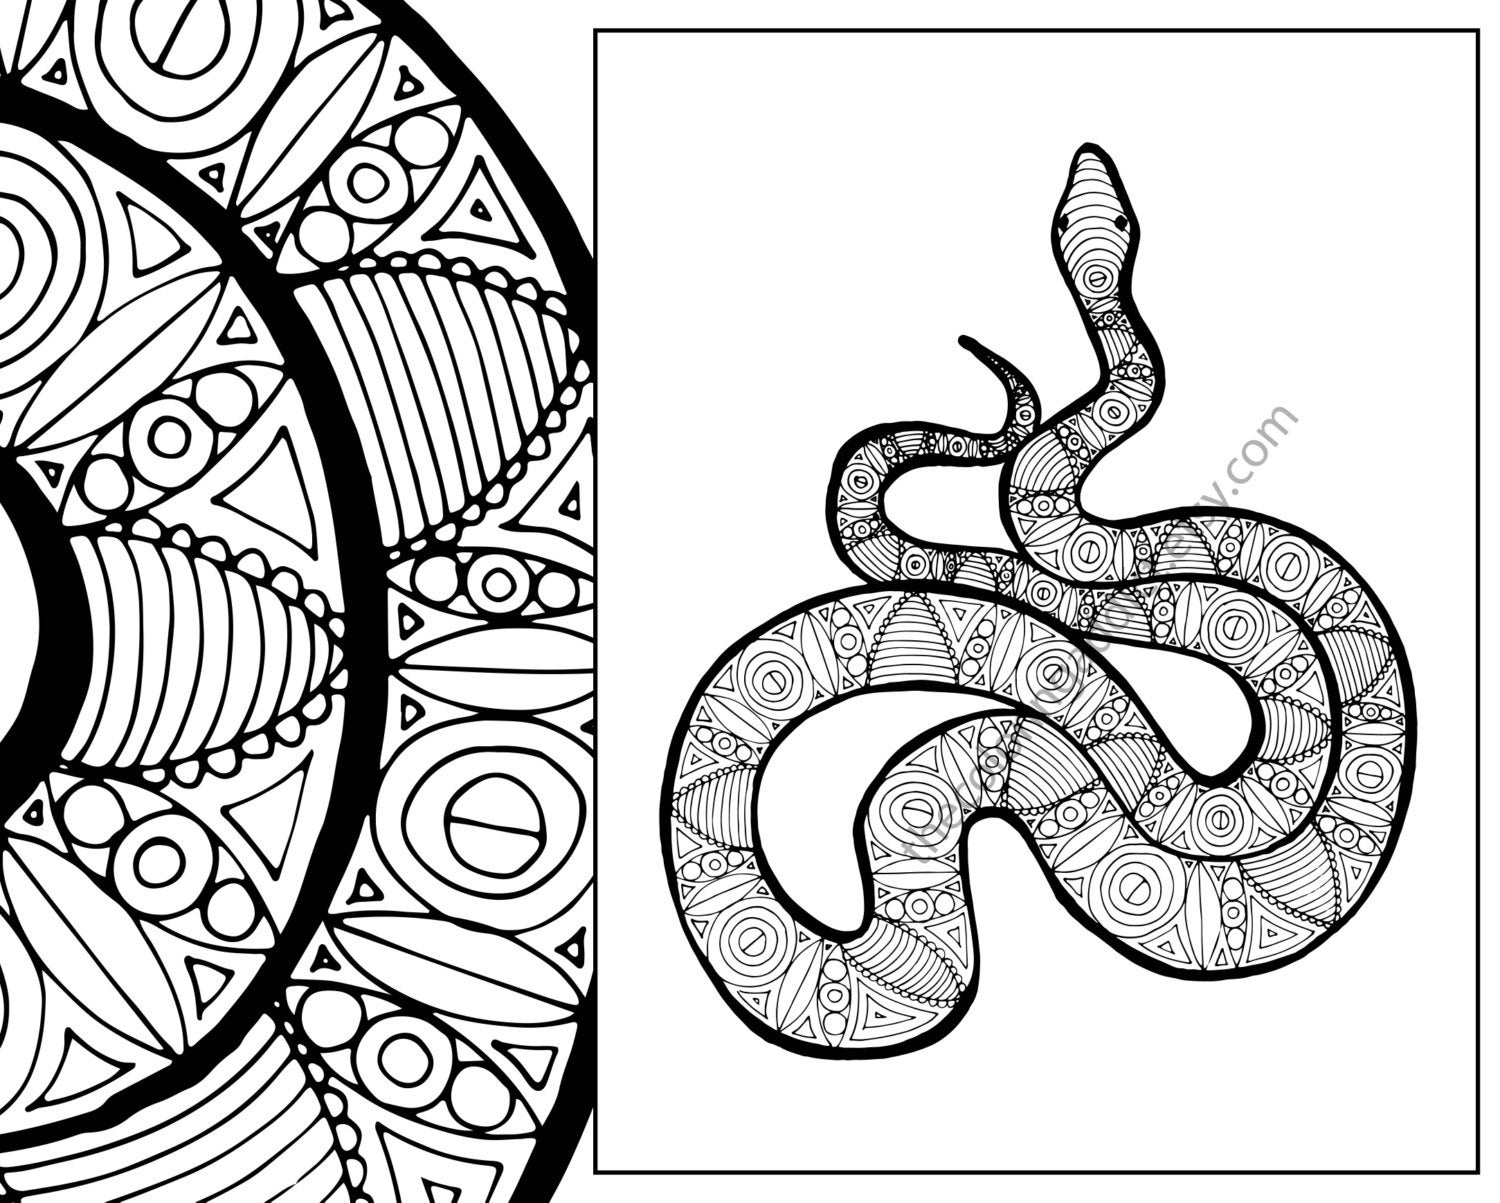 snakes to color snake coloring pages to download and print for free to color snakes